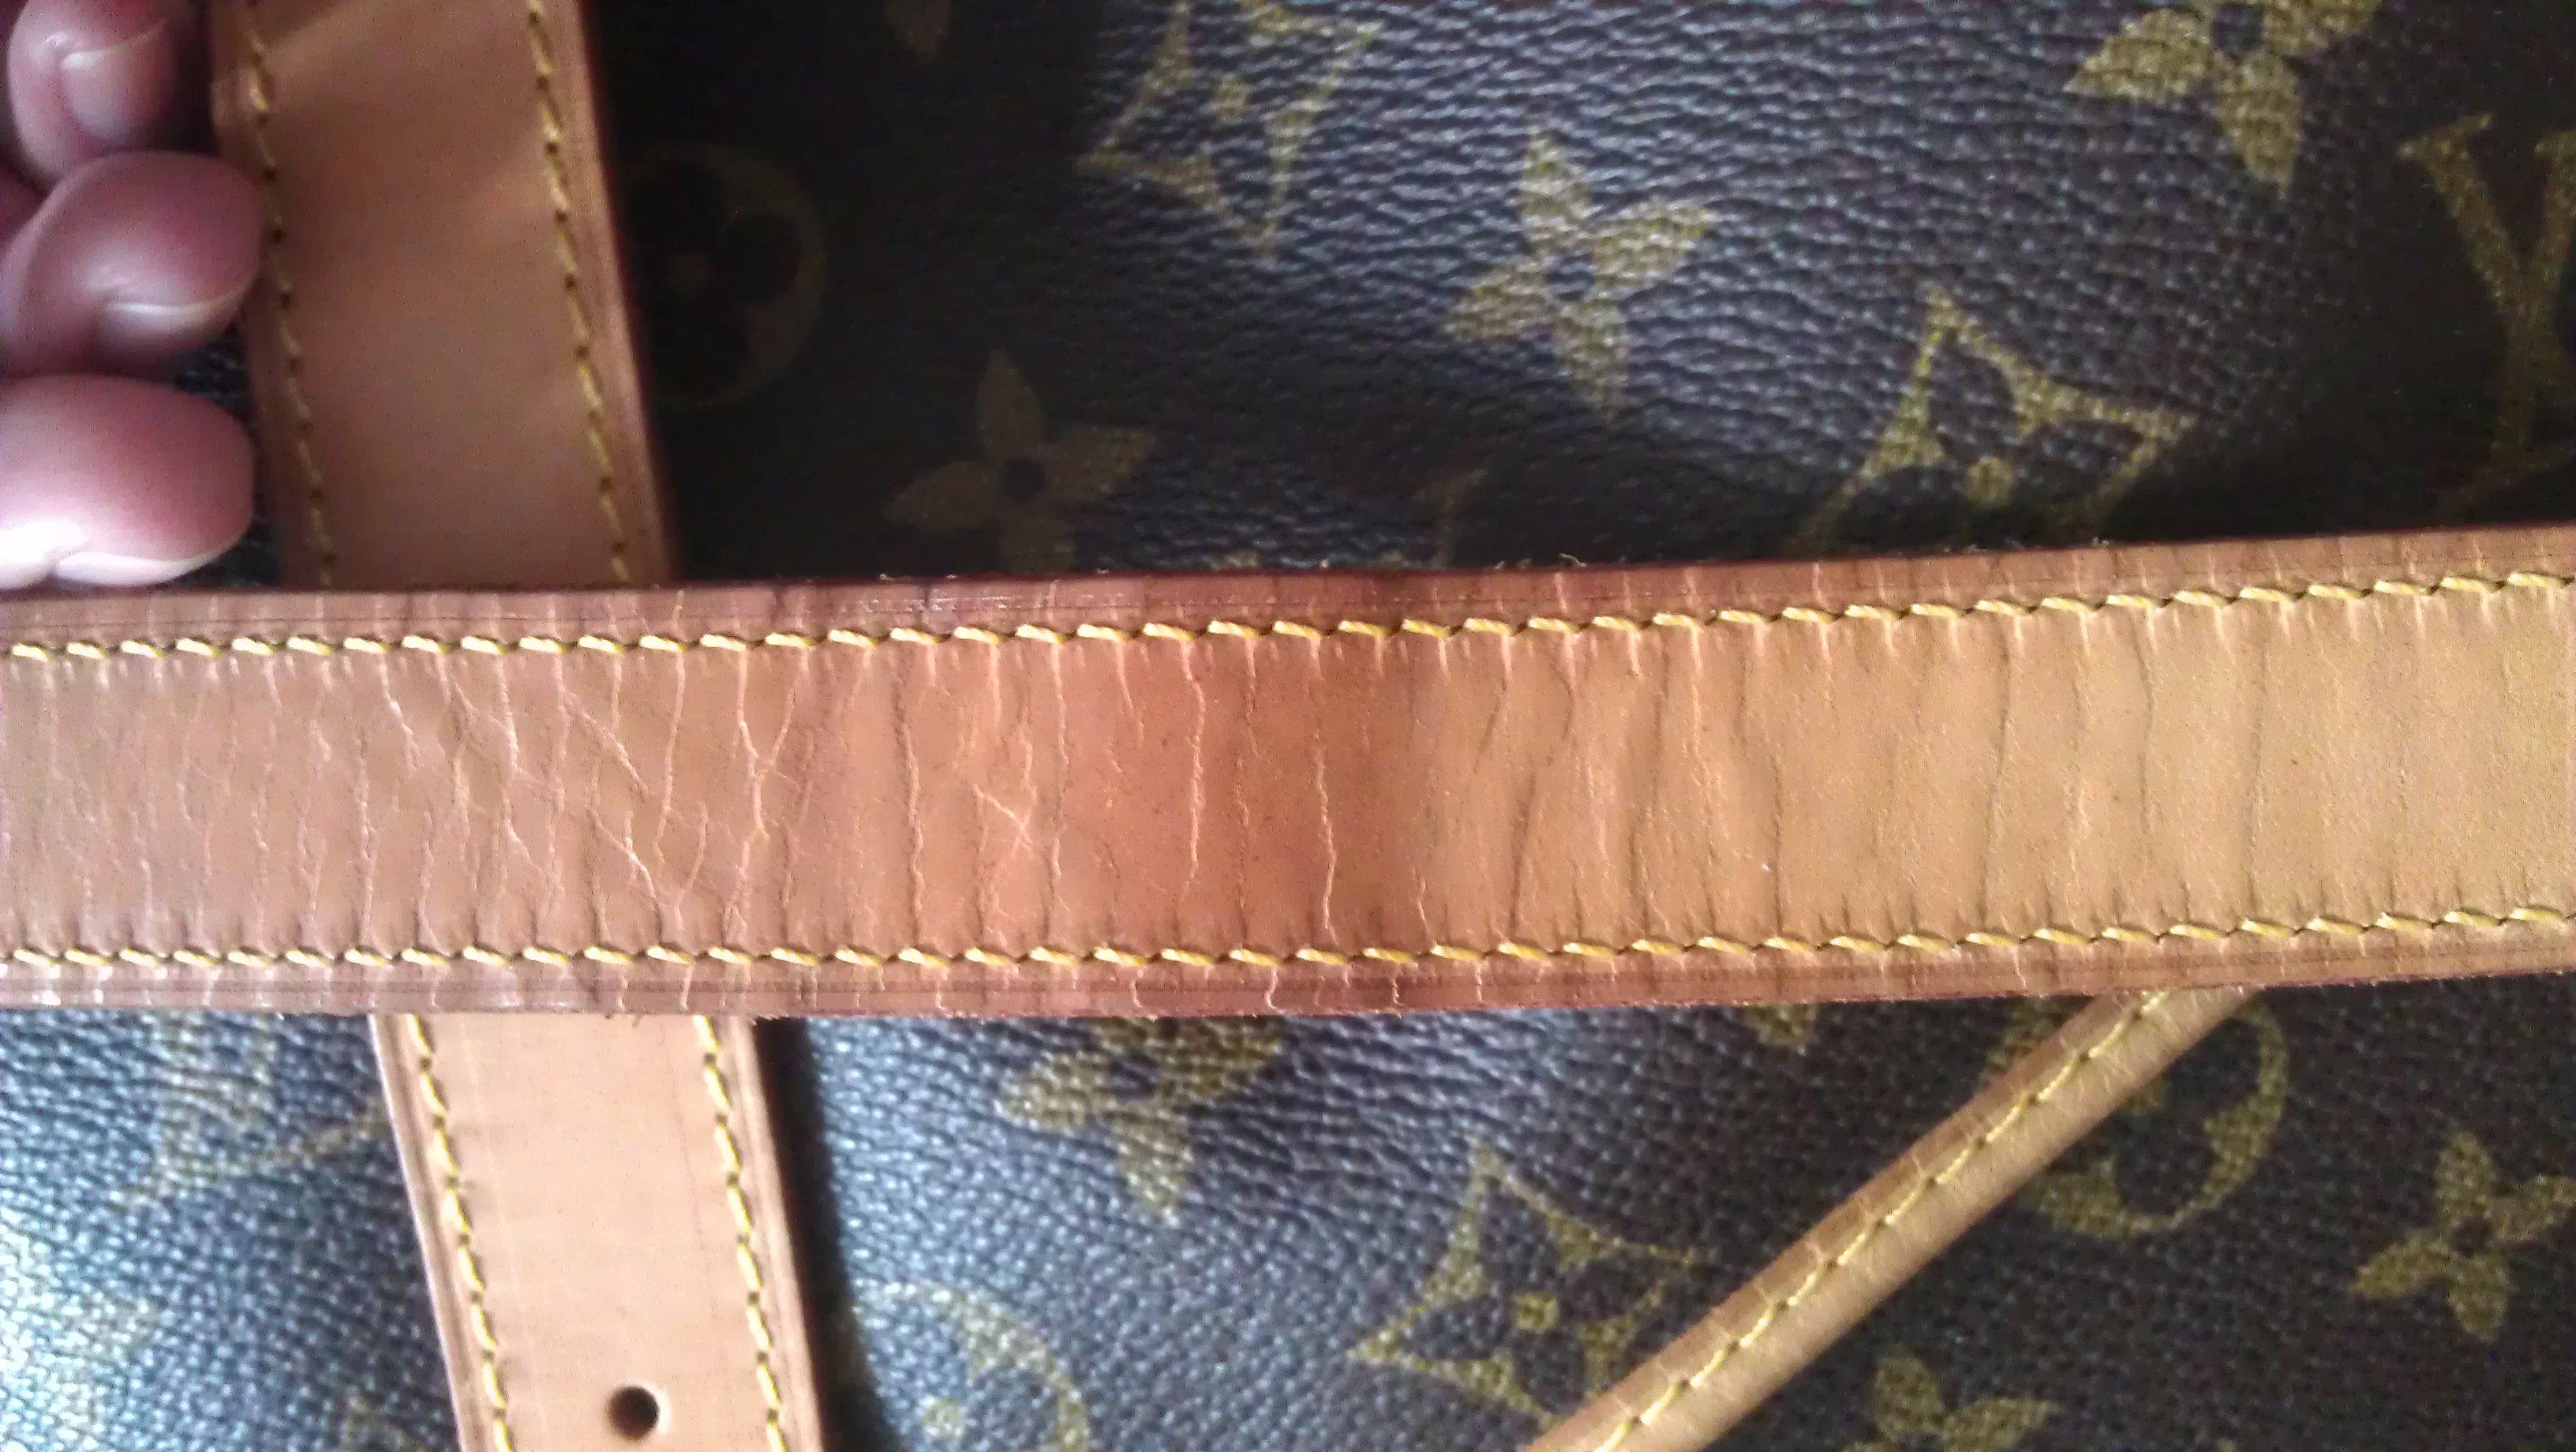 91a8f7f4b9fa Louis Vuitton - Water Spots and Cracks on Vachetta leather Strap!